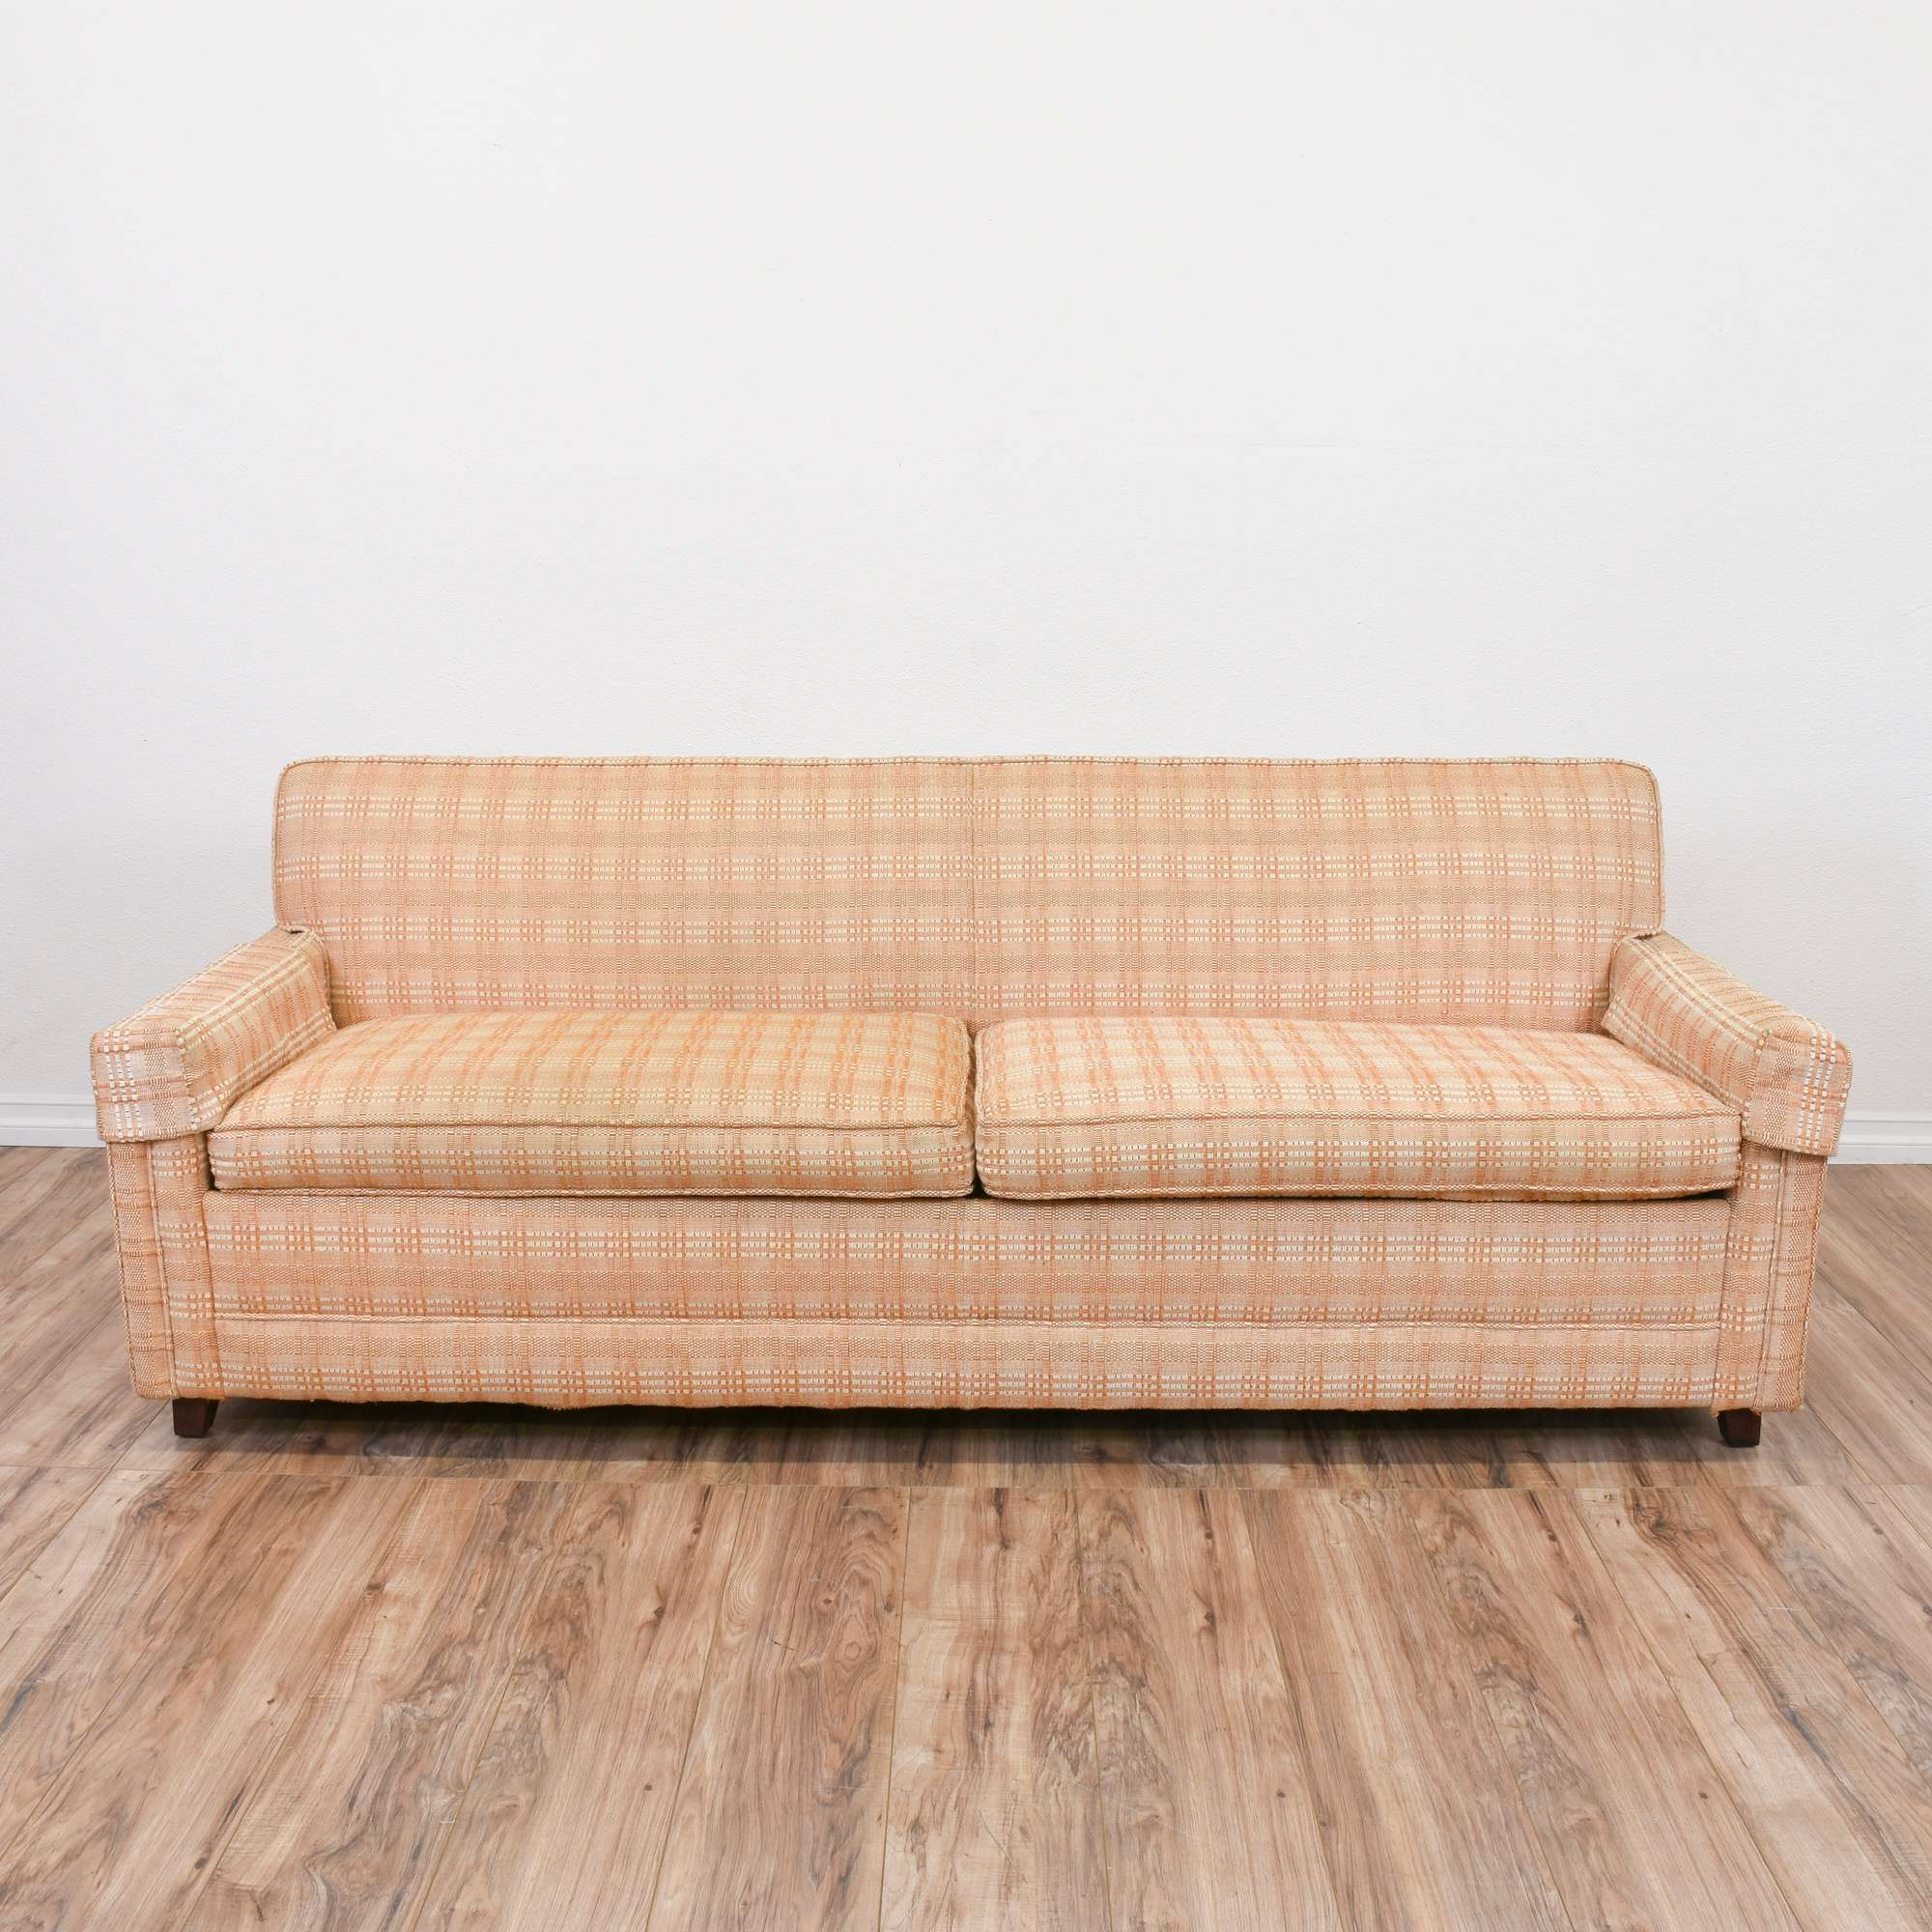 Superb Plaid Peach Mid Century Modern Sofa Bed Loveseat Vintage Pabps2019 Chair Design Images Pabps2019Com